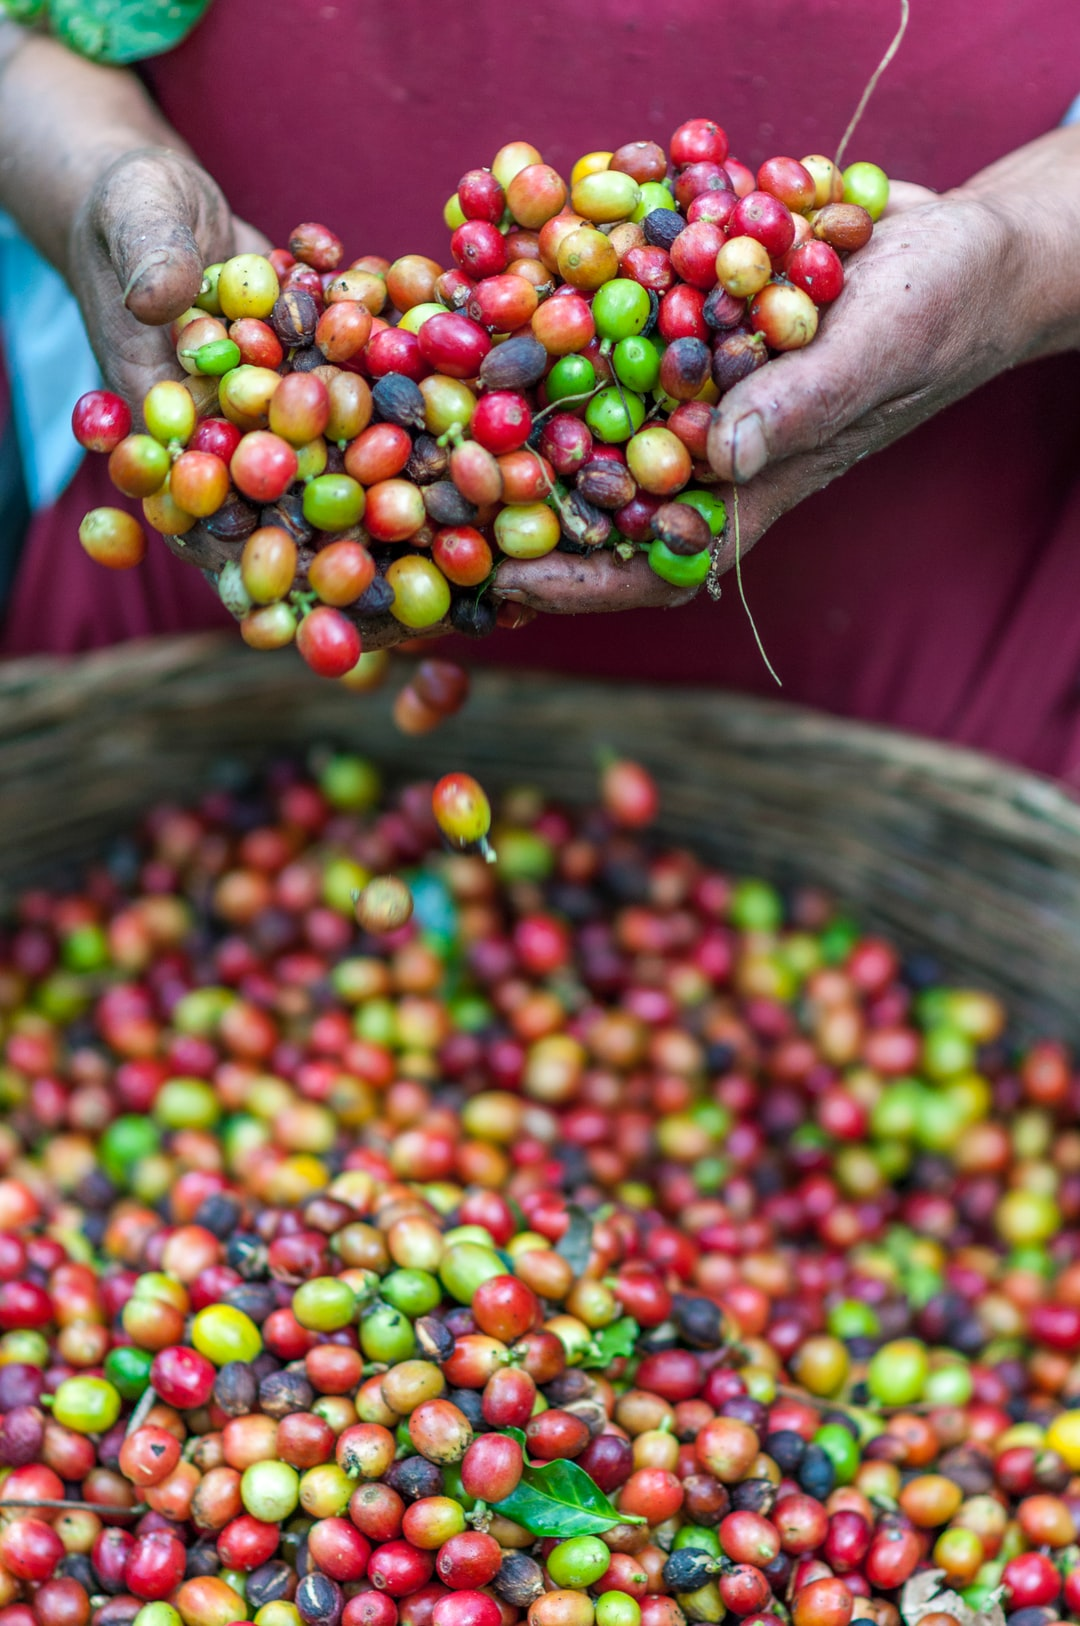 We strive to deliver unique & fresh coffees from around the world for a fair price that ensures resources are going back to the farms our coffees originate from